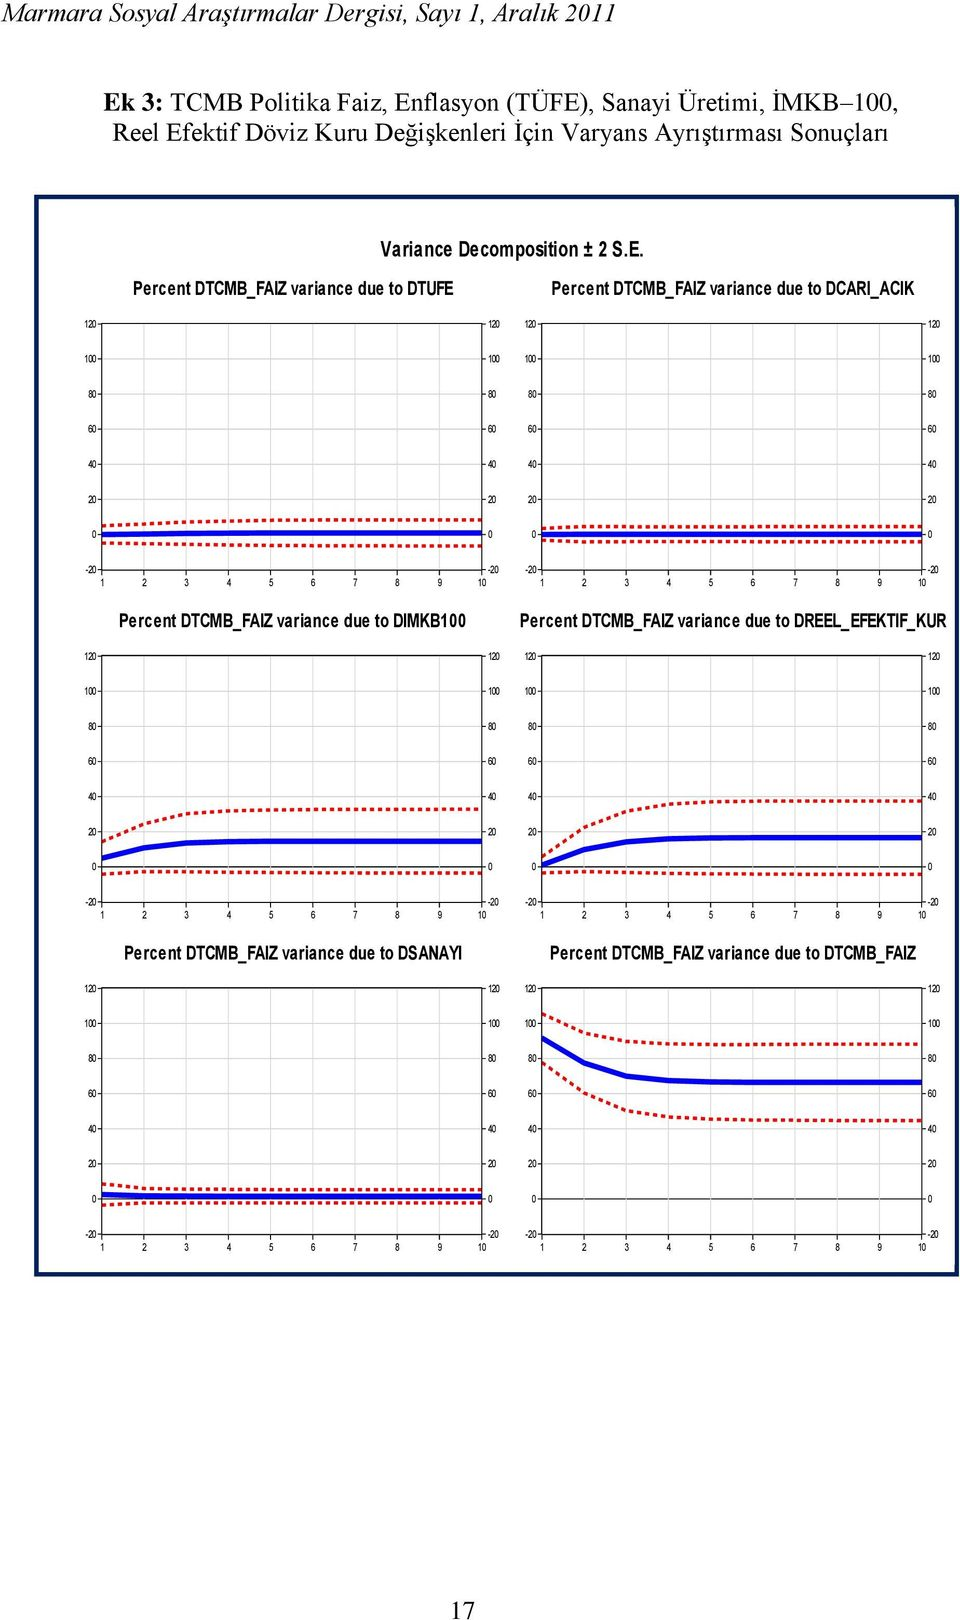 Percent DTCMB_FAIZ variance due to DTUFE Percent DTCMB_FAIZ variance due to DCARI_ACIK 12 12 12 12 8 8 8 8 6 6 6 6 4 4 4 4 2 2 2 2-2 -2 1 2 3 4 5 6 7 8 9 1 Percent DTCMB_FAIZ variance due to